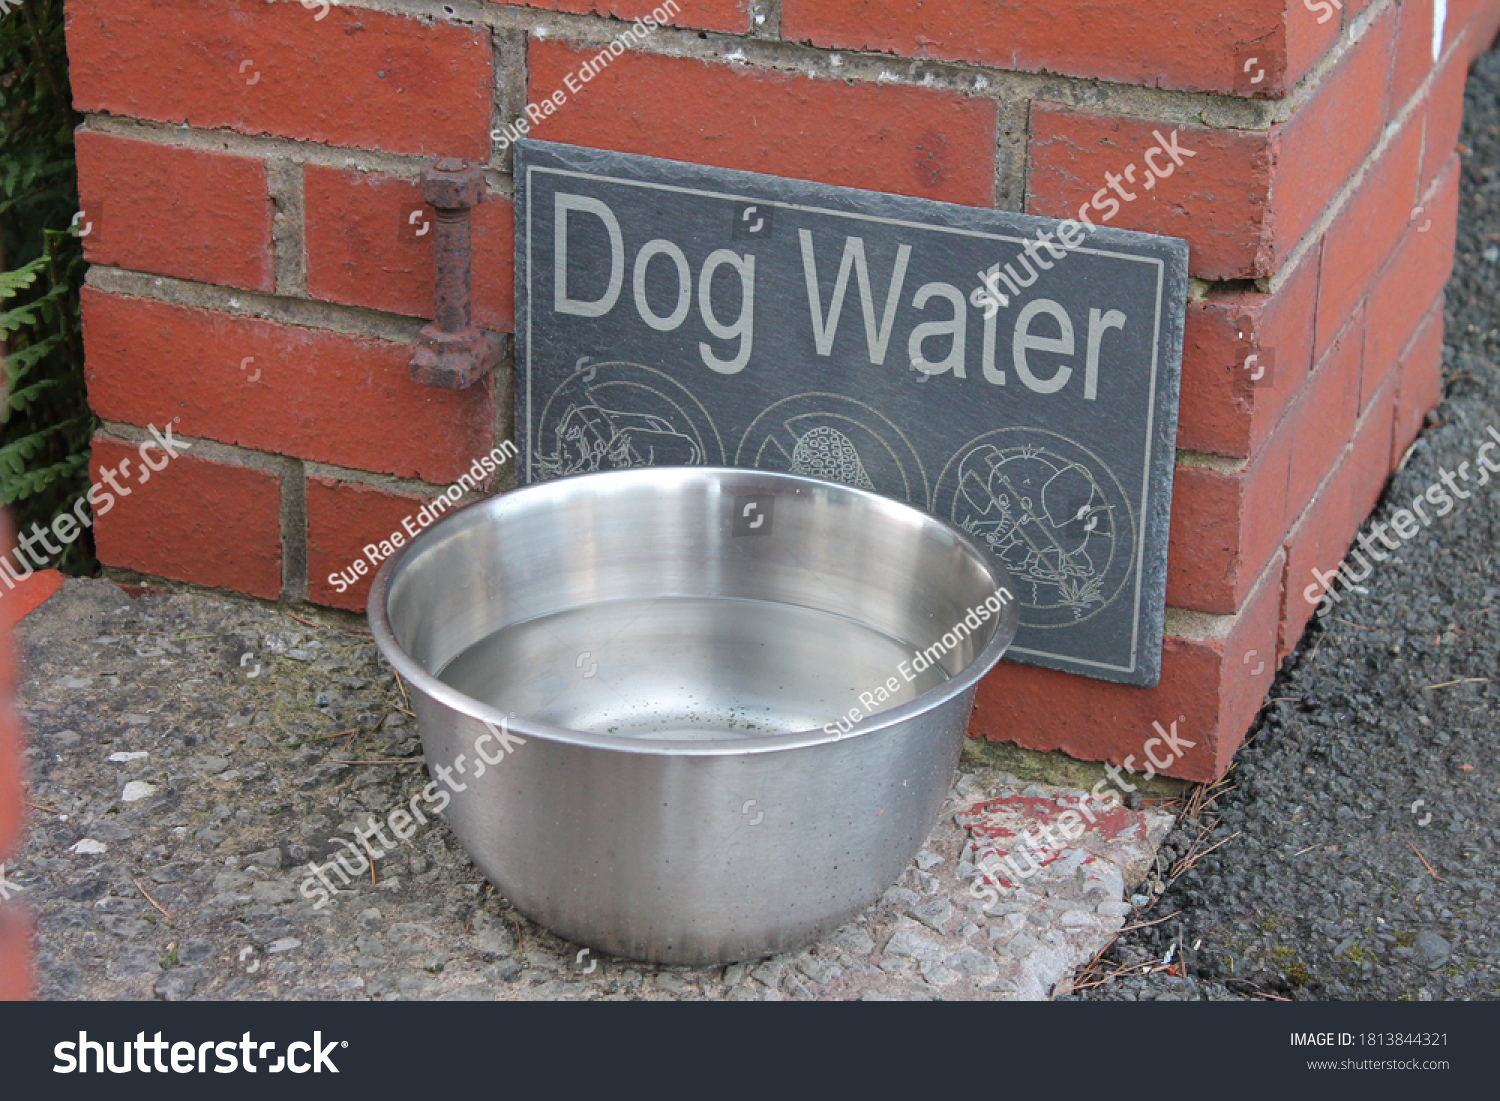 Dog water sign and metal bowl at property entrance